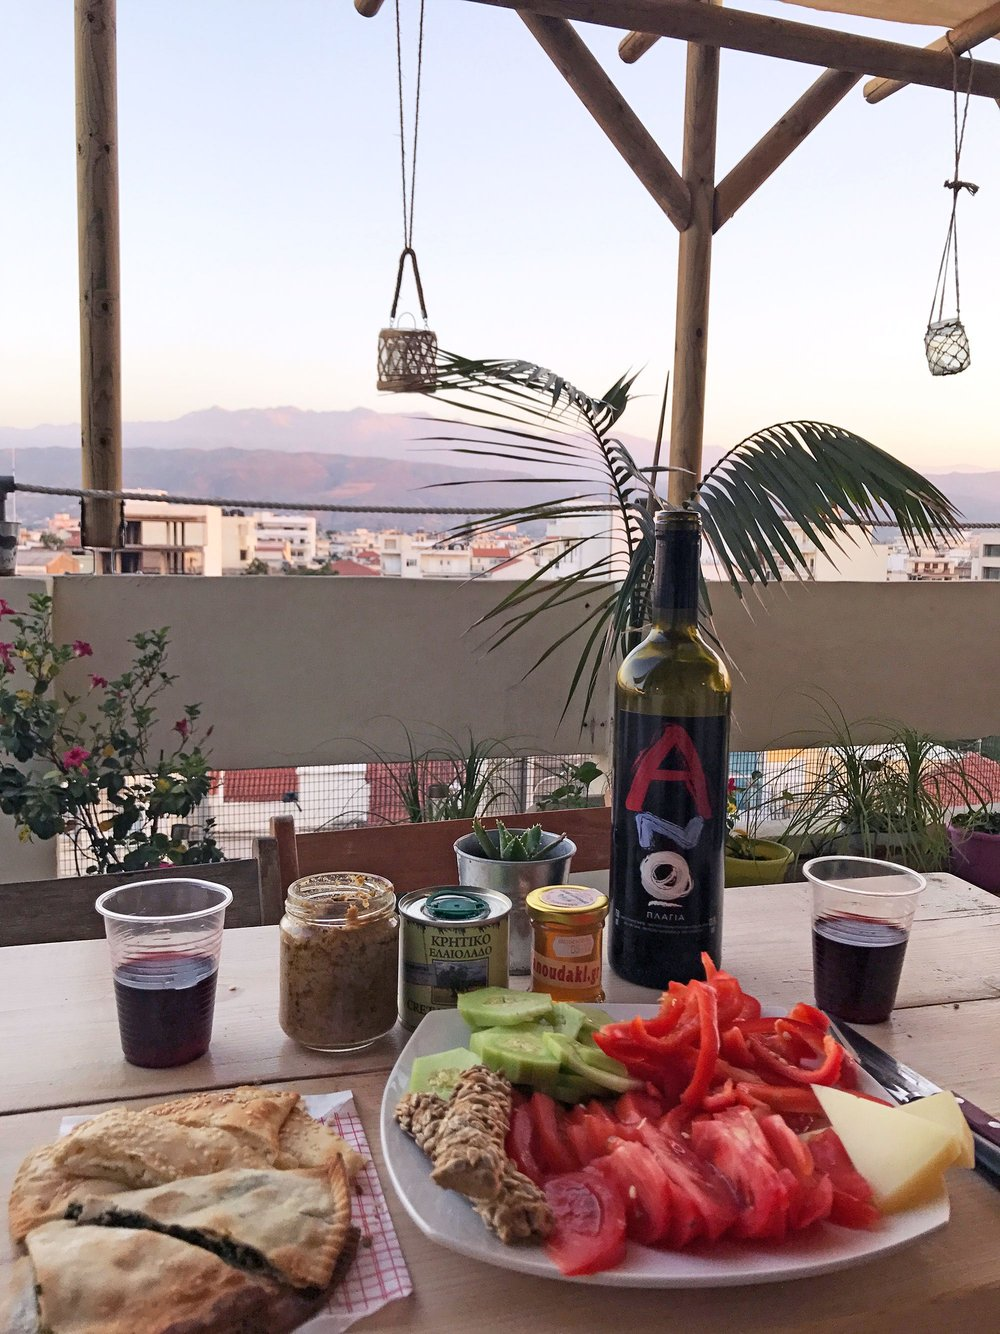 Chania picnic | Top 8 Experiences from Road Tripping Crete, Greece